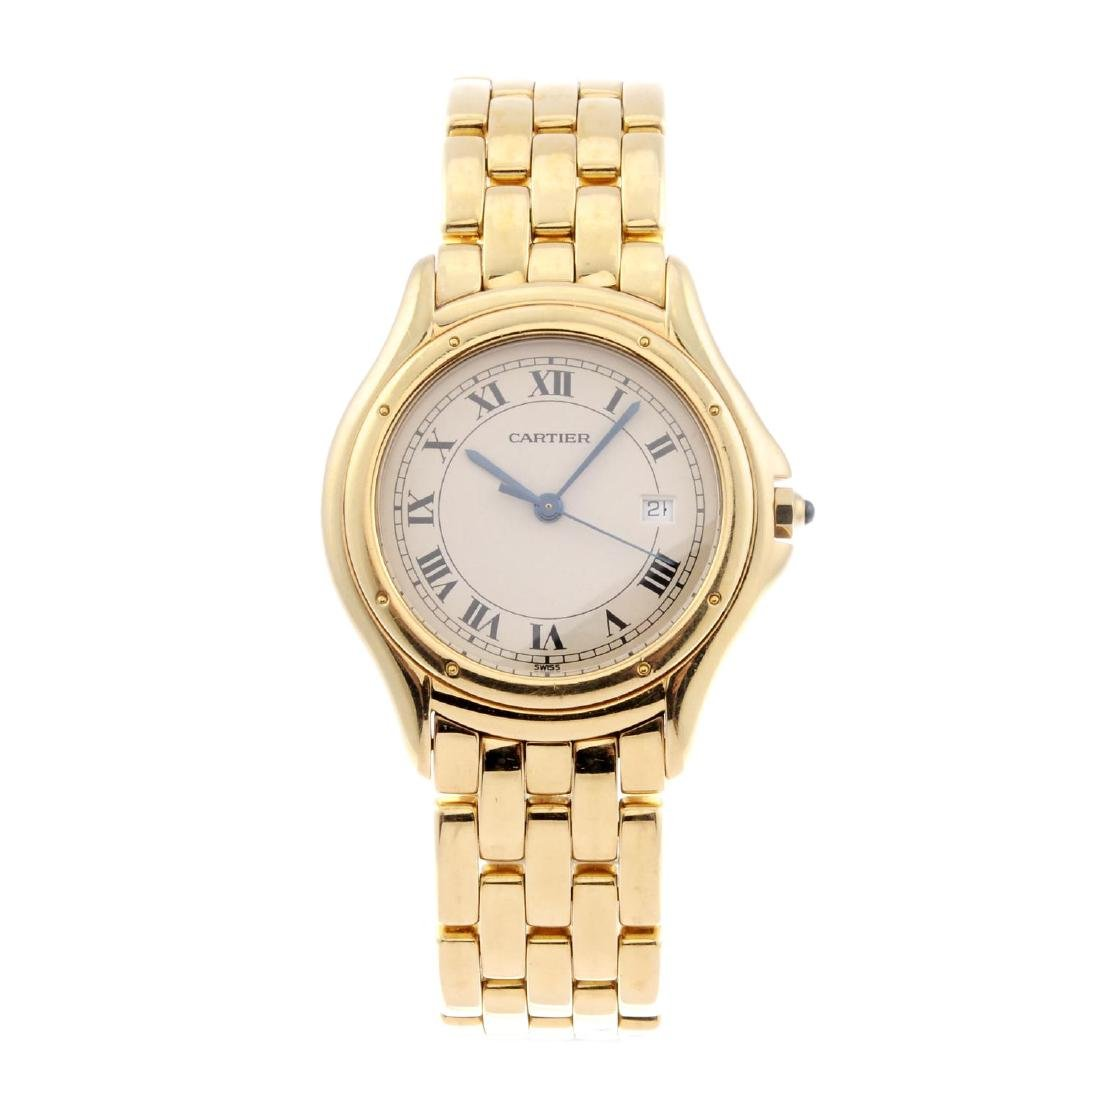 CARTIER - a Cougar bracelet watch. 18ct yellow gold